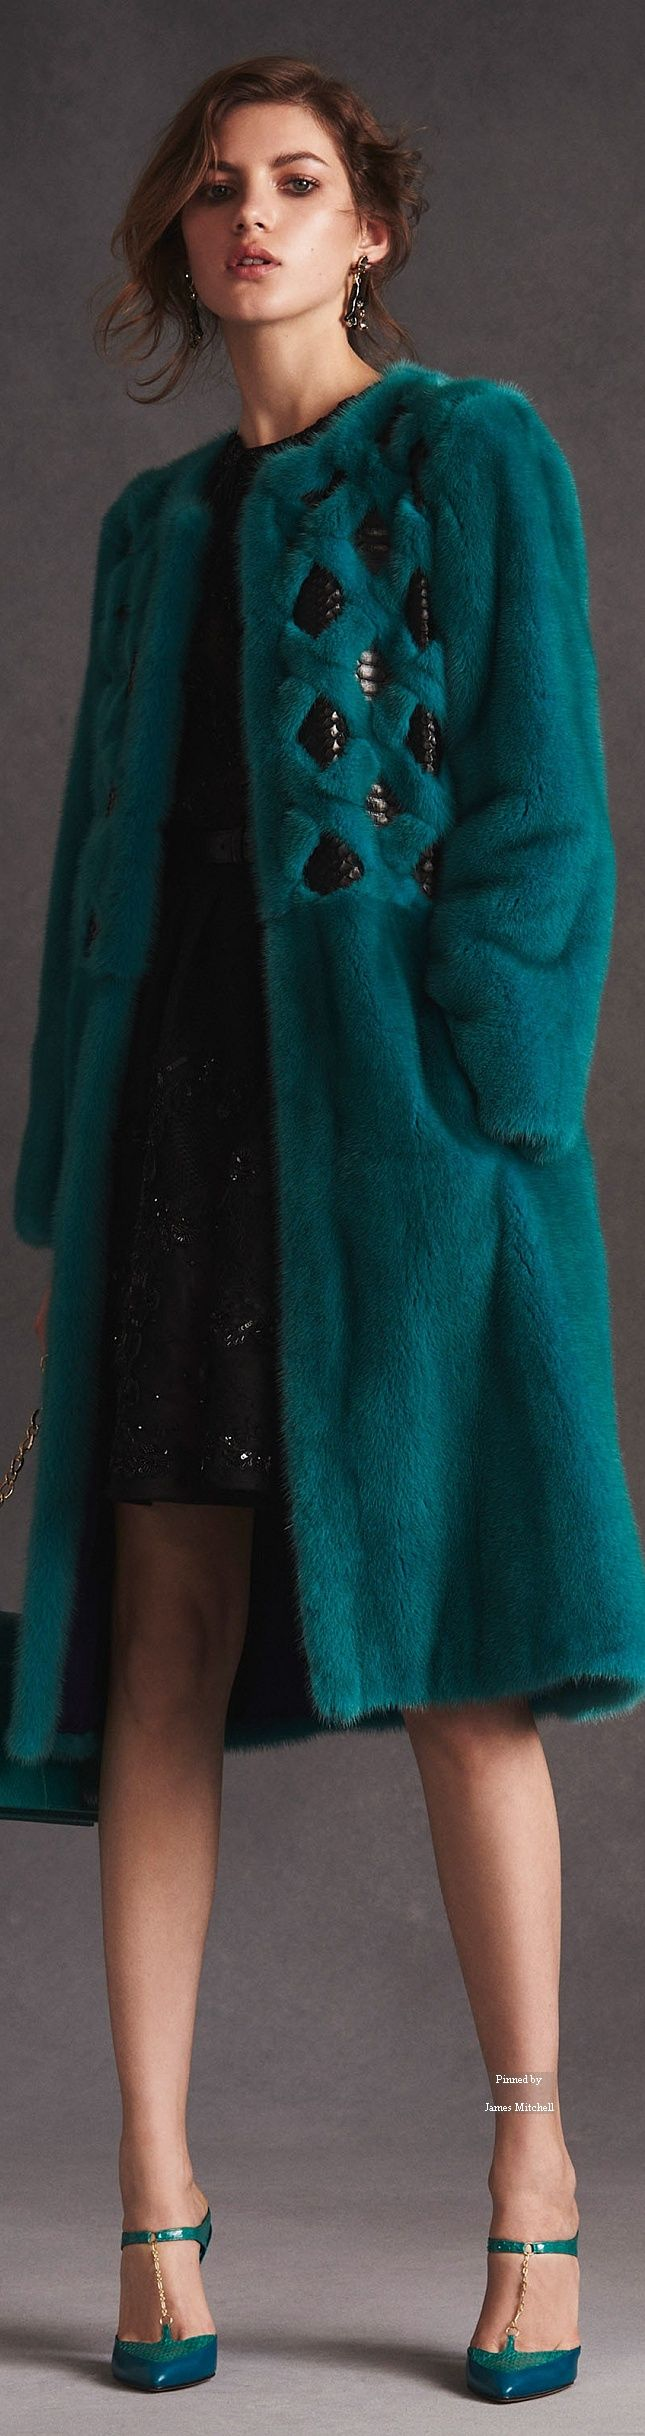 Teal fur coat with inserts - Oscar de la Renta Pre Spring 2016 collection